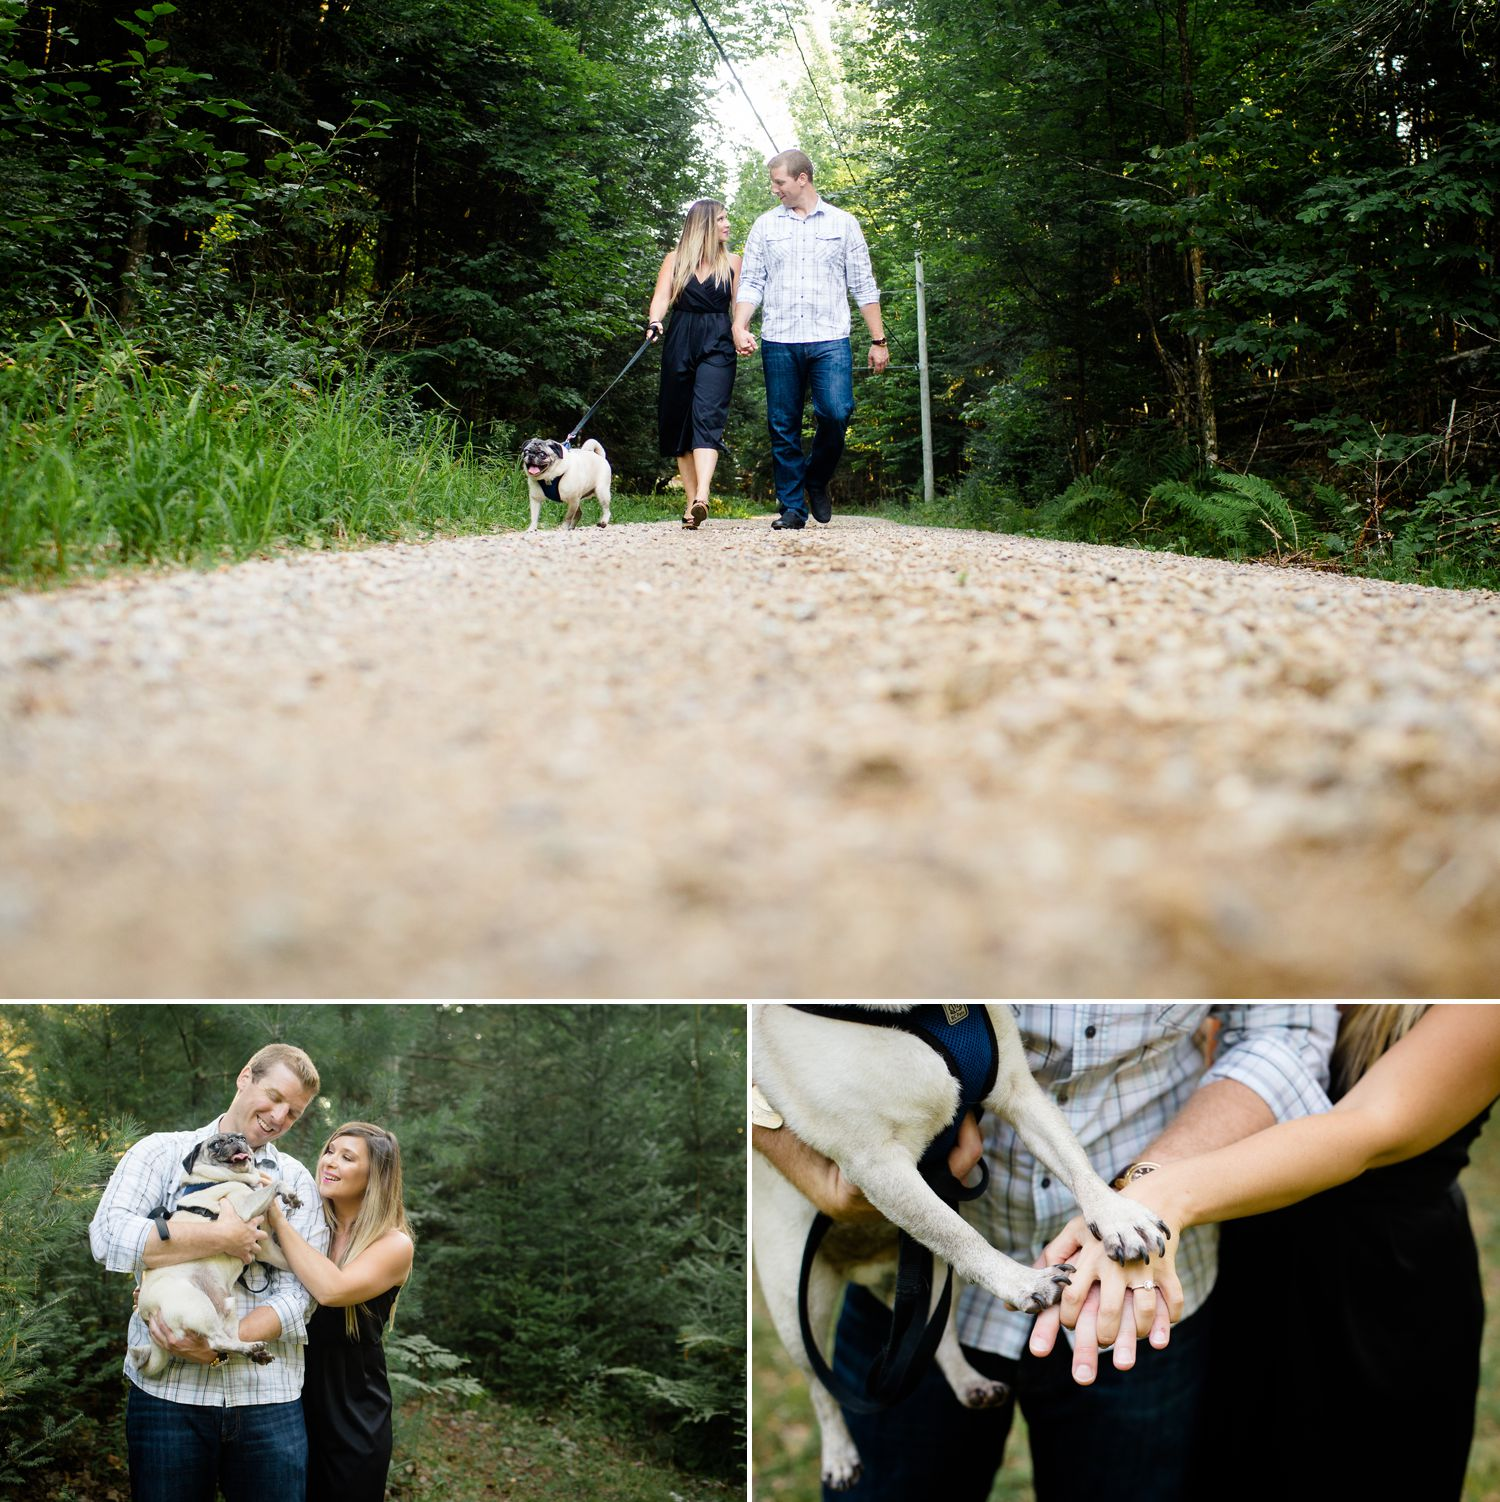 Ashley and Steve walking their pug during their engagement shoot